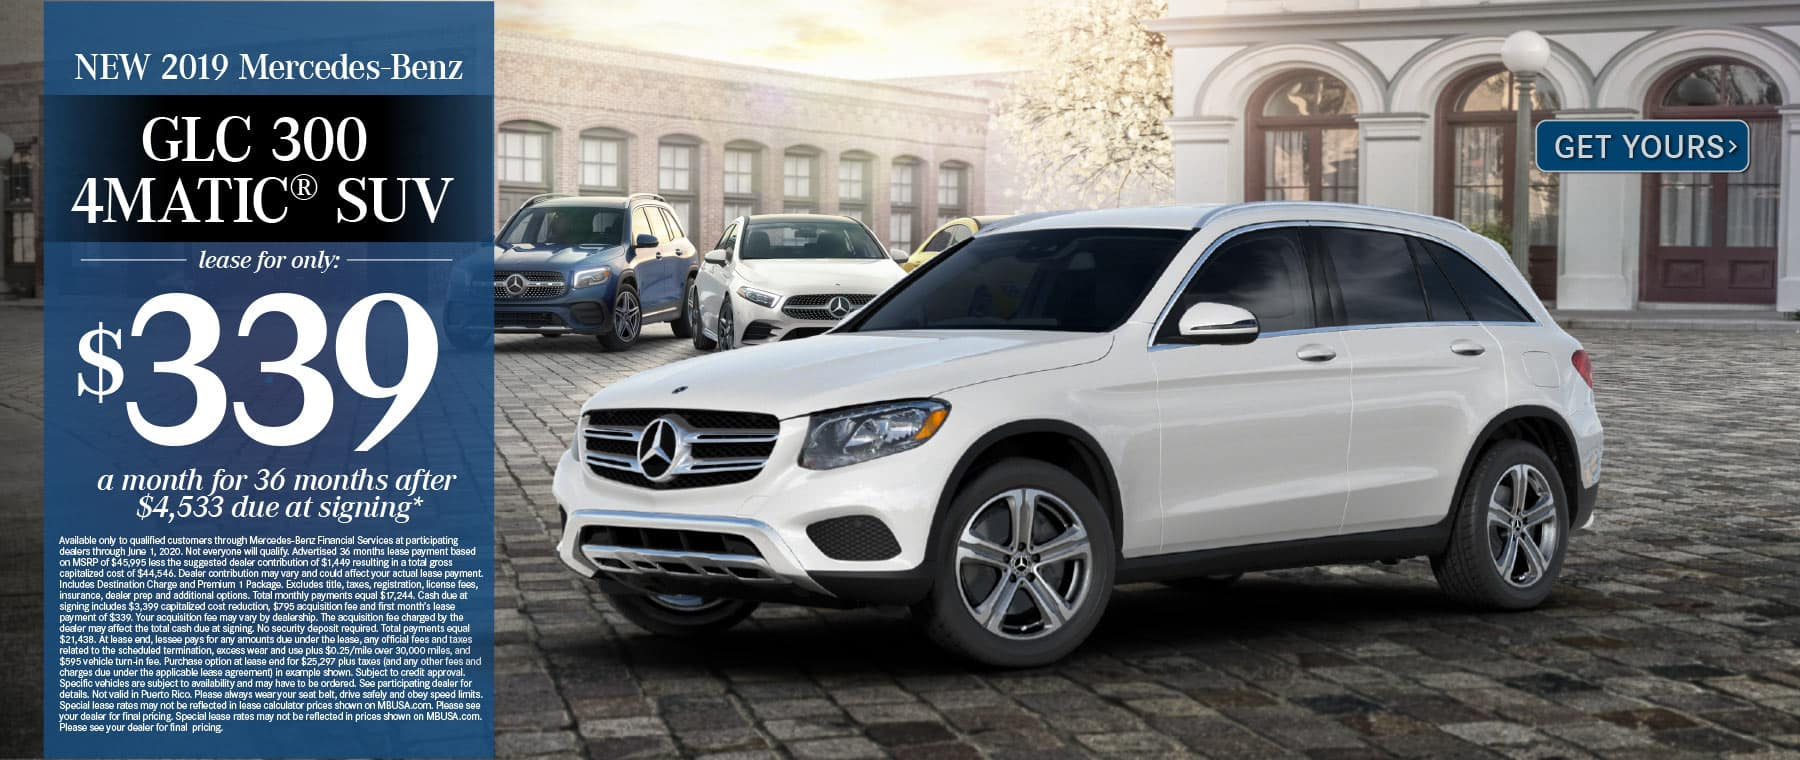 2019 Mercedes-Benz GLC 300 $339 a month for 36 months after $4533 due at signing. Get Yours.